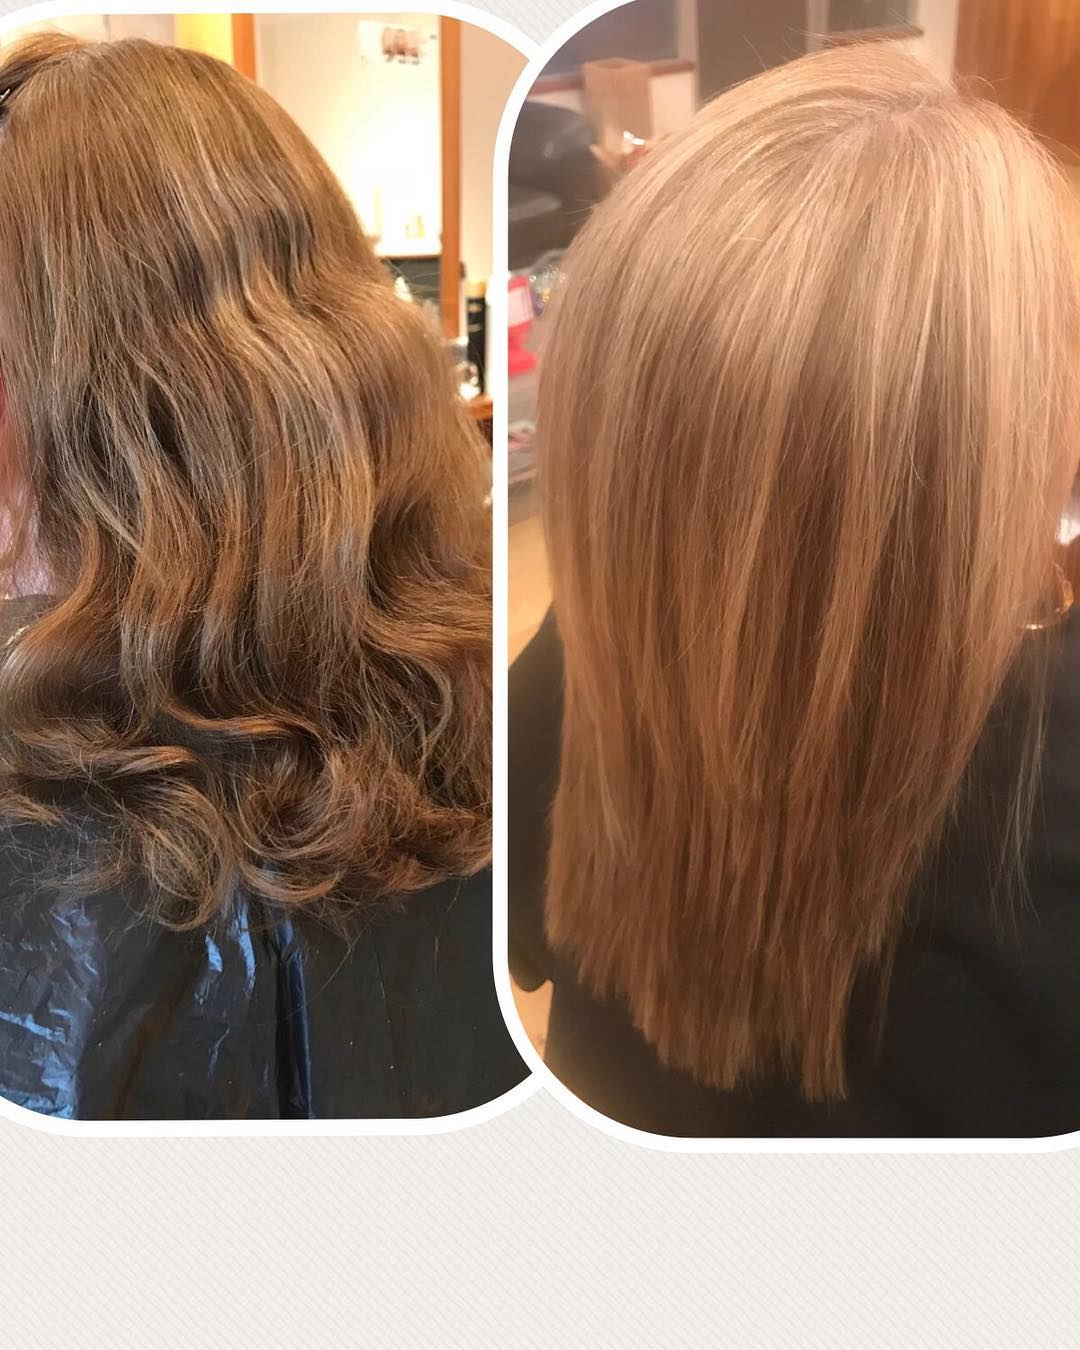 From drab to FAB!! Gorgeous set of natural highlights forhellip